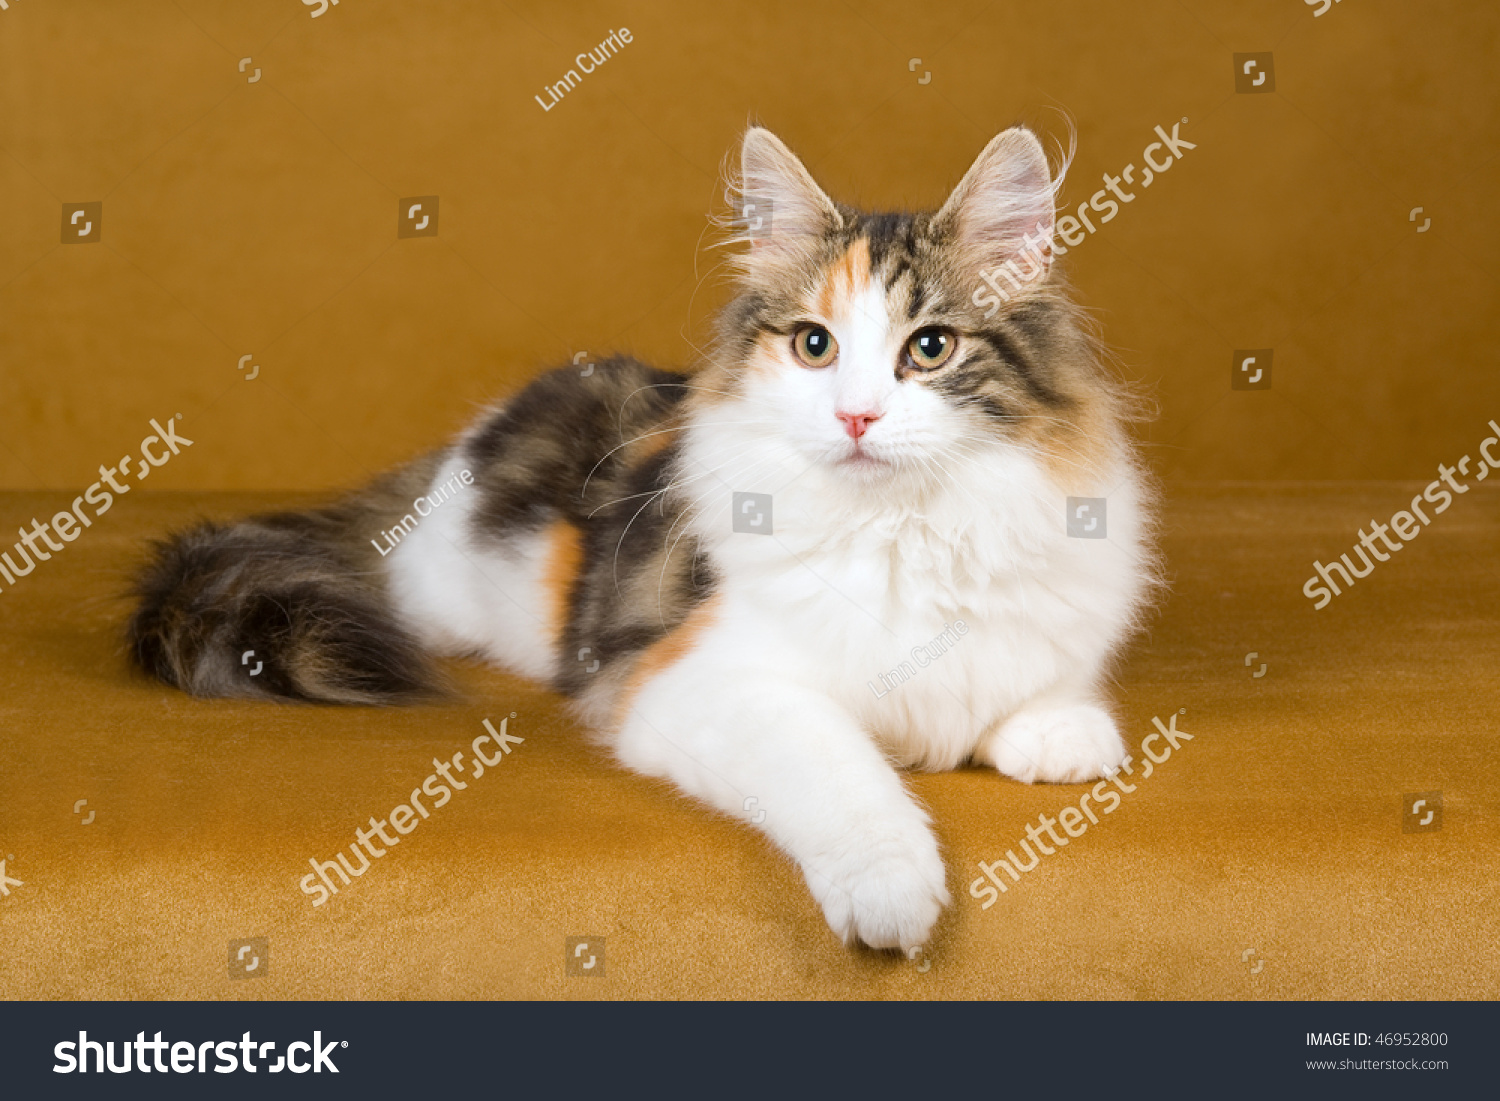 Beautiful Calico Norwegian Forest Cat On Stock Photo ...